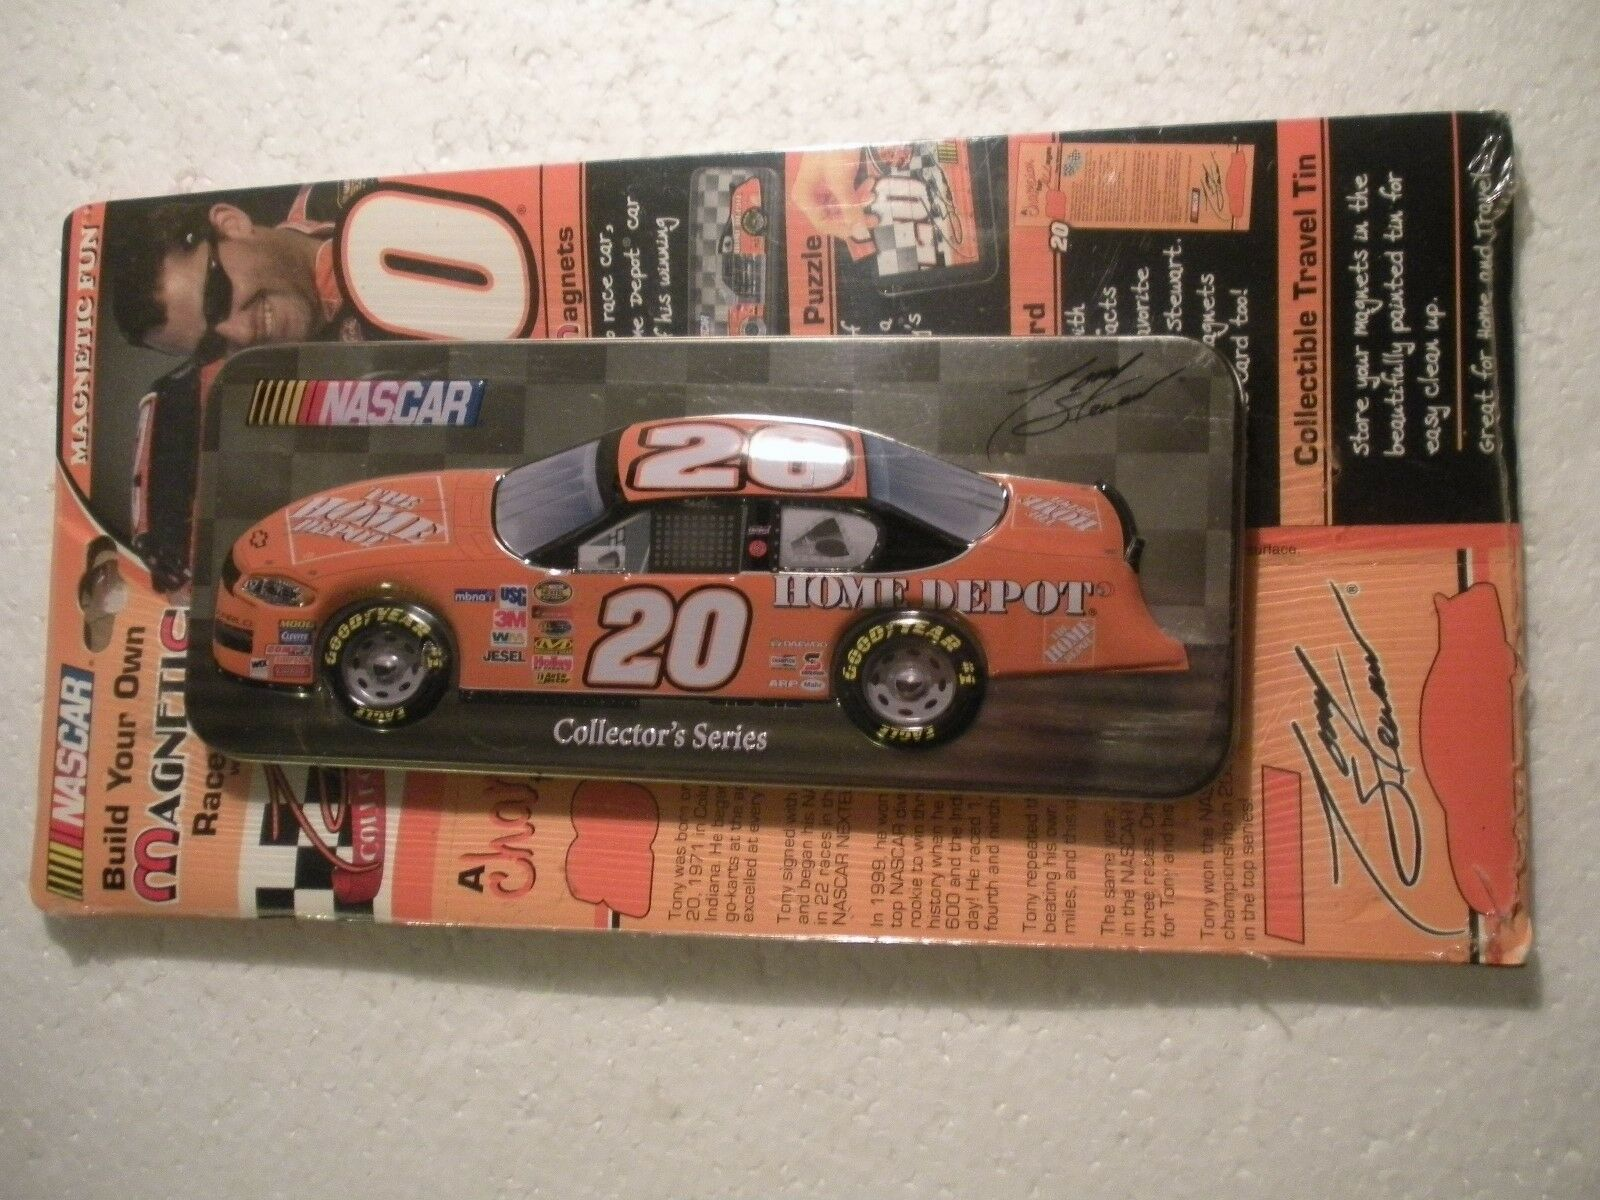 Tony Stewart 2005 MAGNETIC RACE CAR WITH 3D TIN CONTAINER HOME DEPOT NASCAR